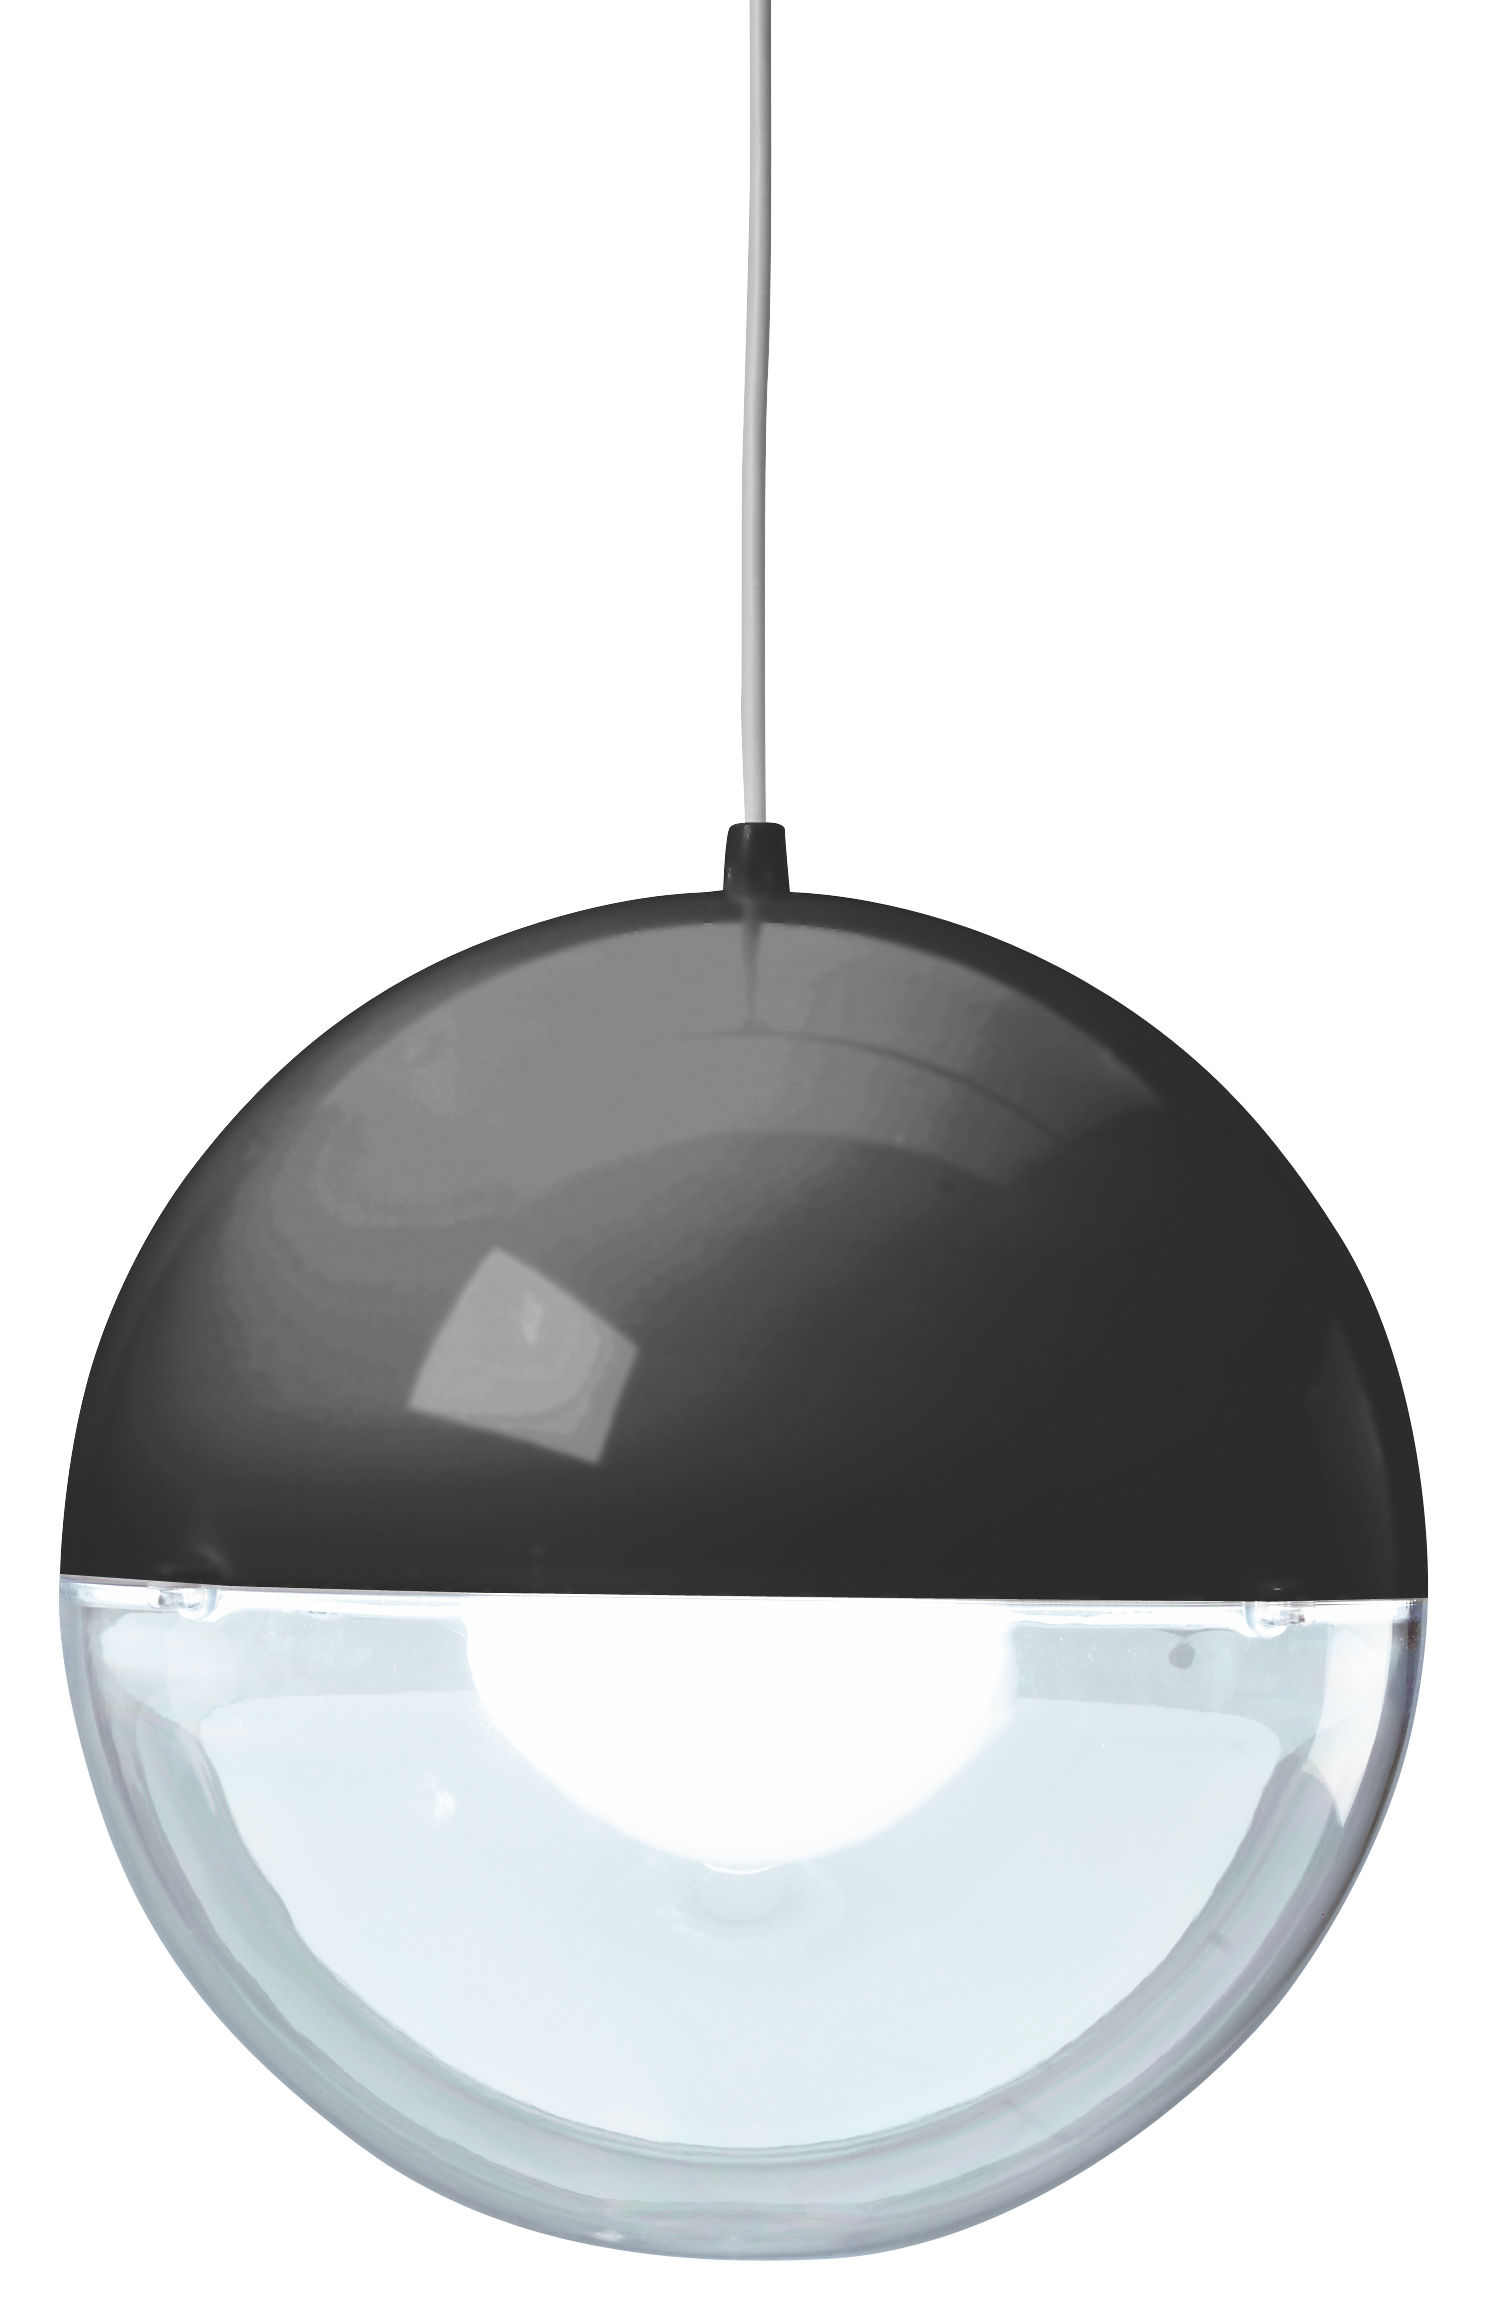 Luminaire - Suspensions - Suspension Orion / Ø 32 cm - Koziol - Noir / Transparent - Polystyrène